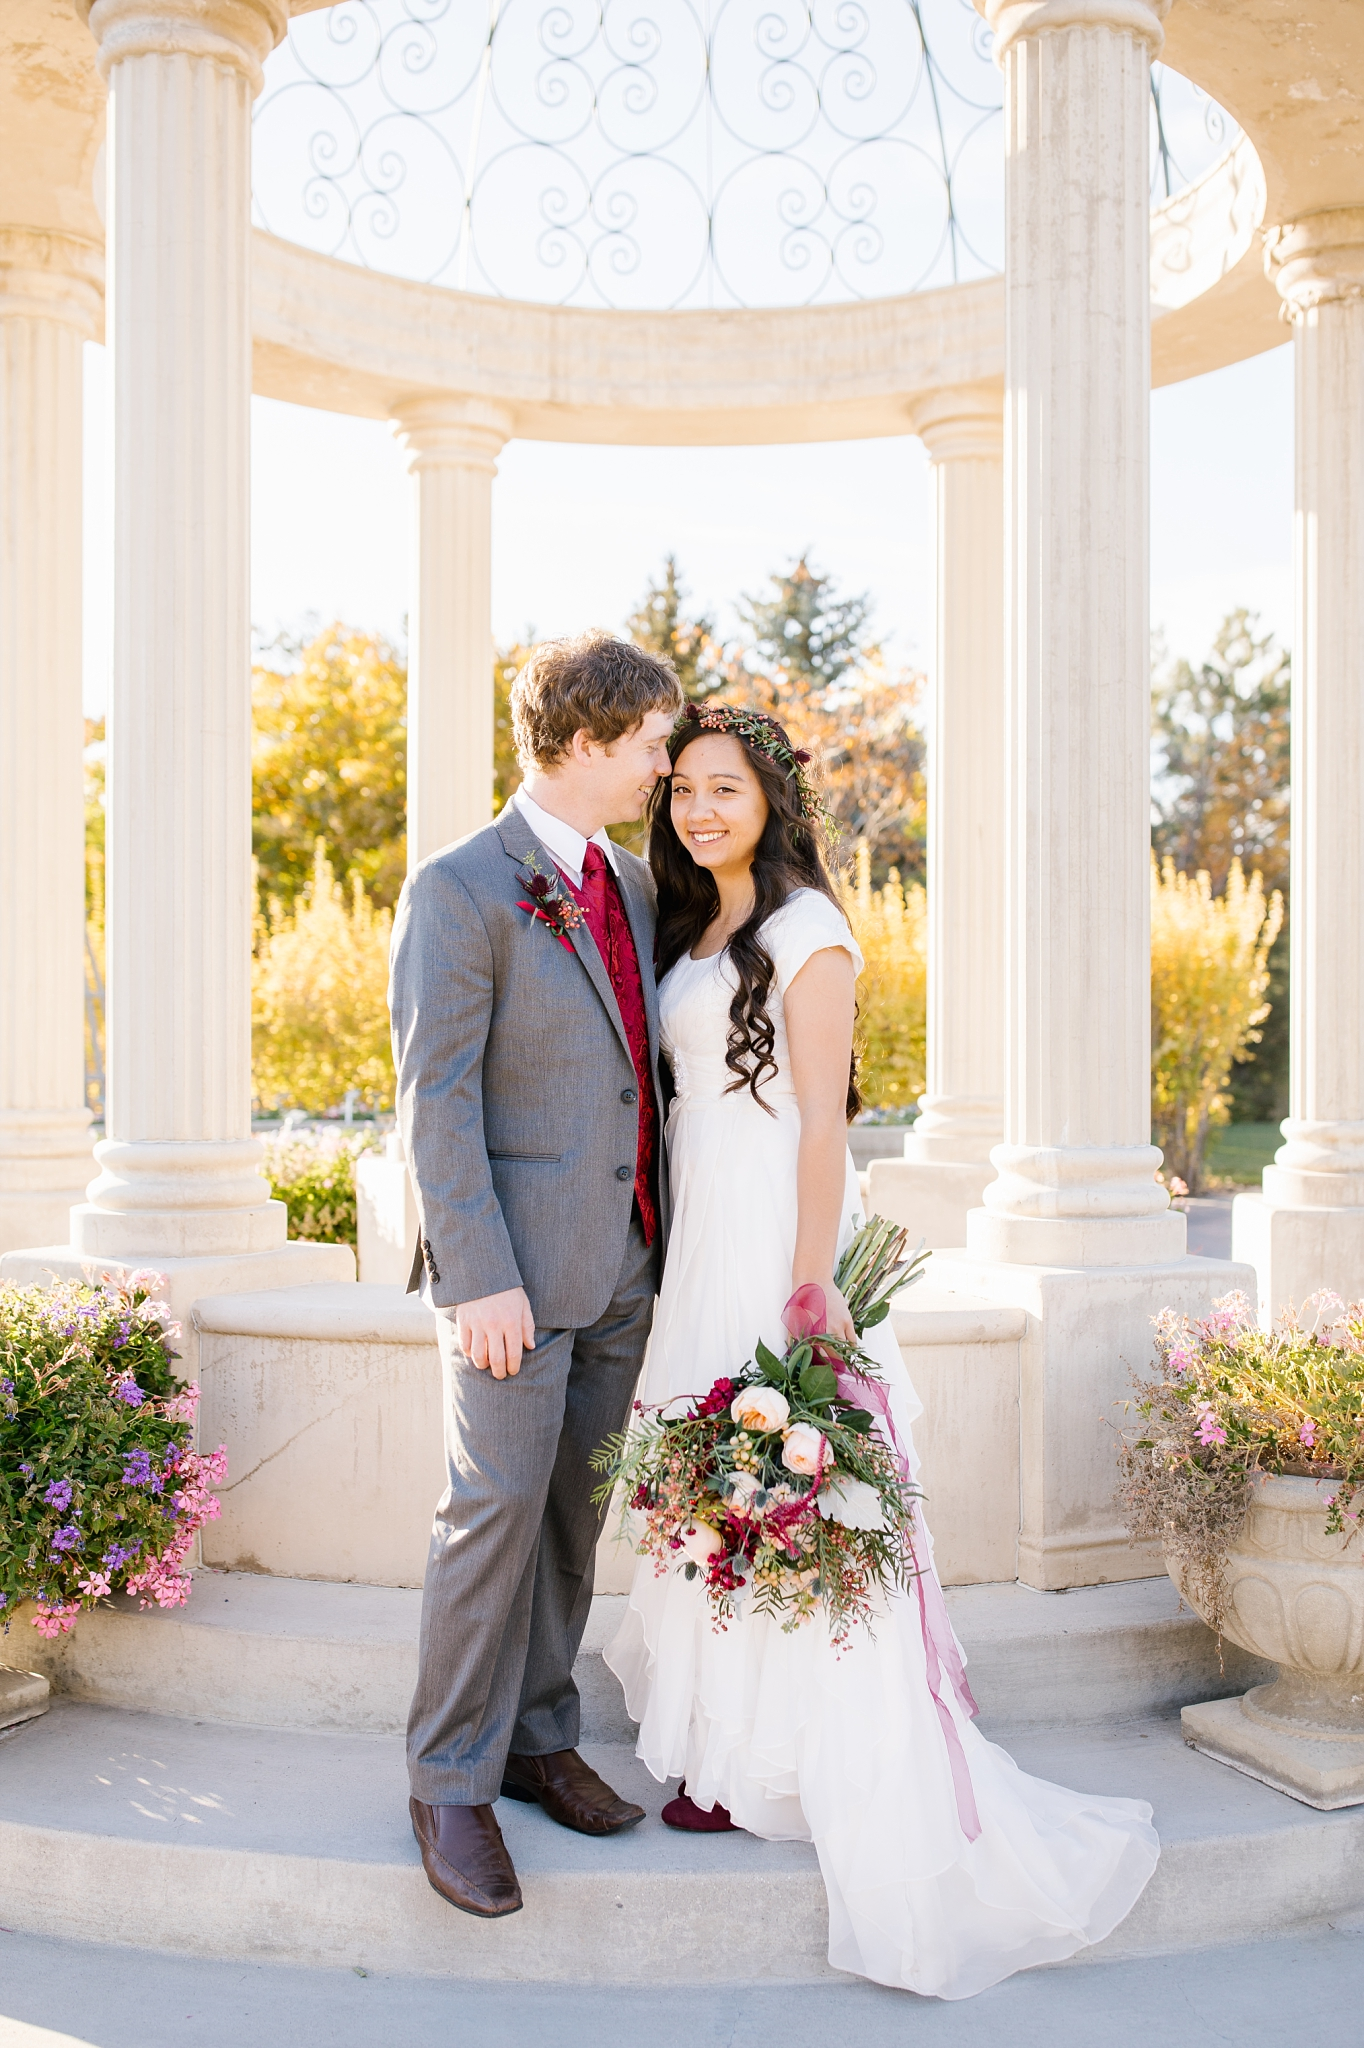 JB-Bridals-52_Lizzie-B-Imagery-Utah-Wedding-Photographer-Thanksgiving-Point-Ashton-Gardens-Lehi-Utah.jpg